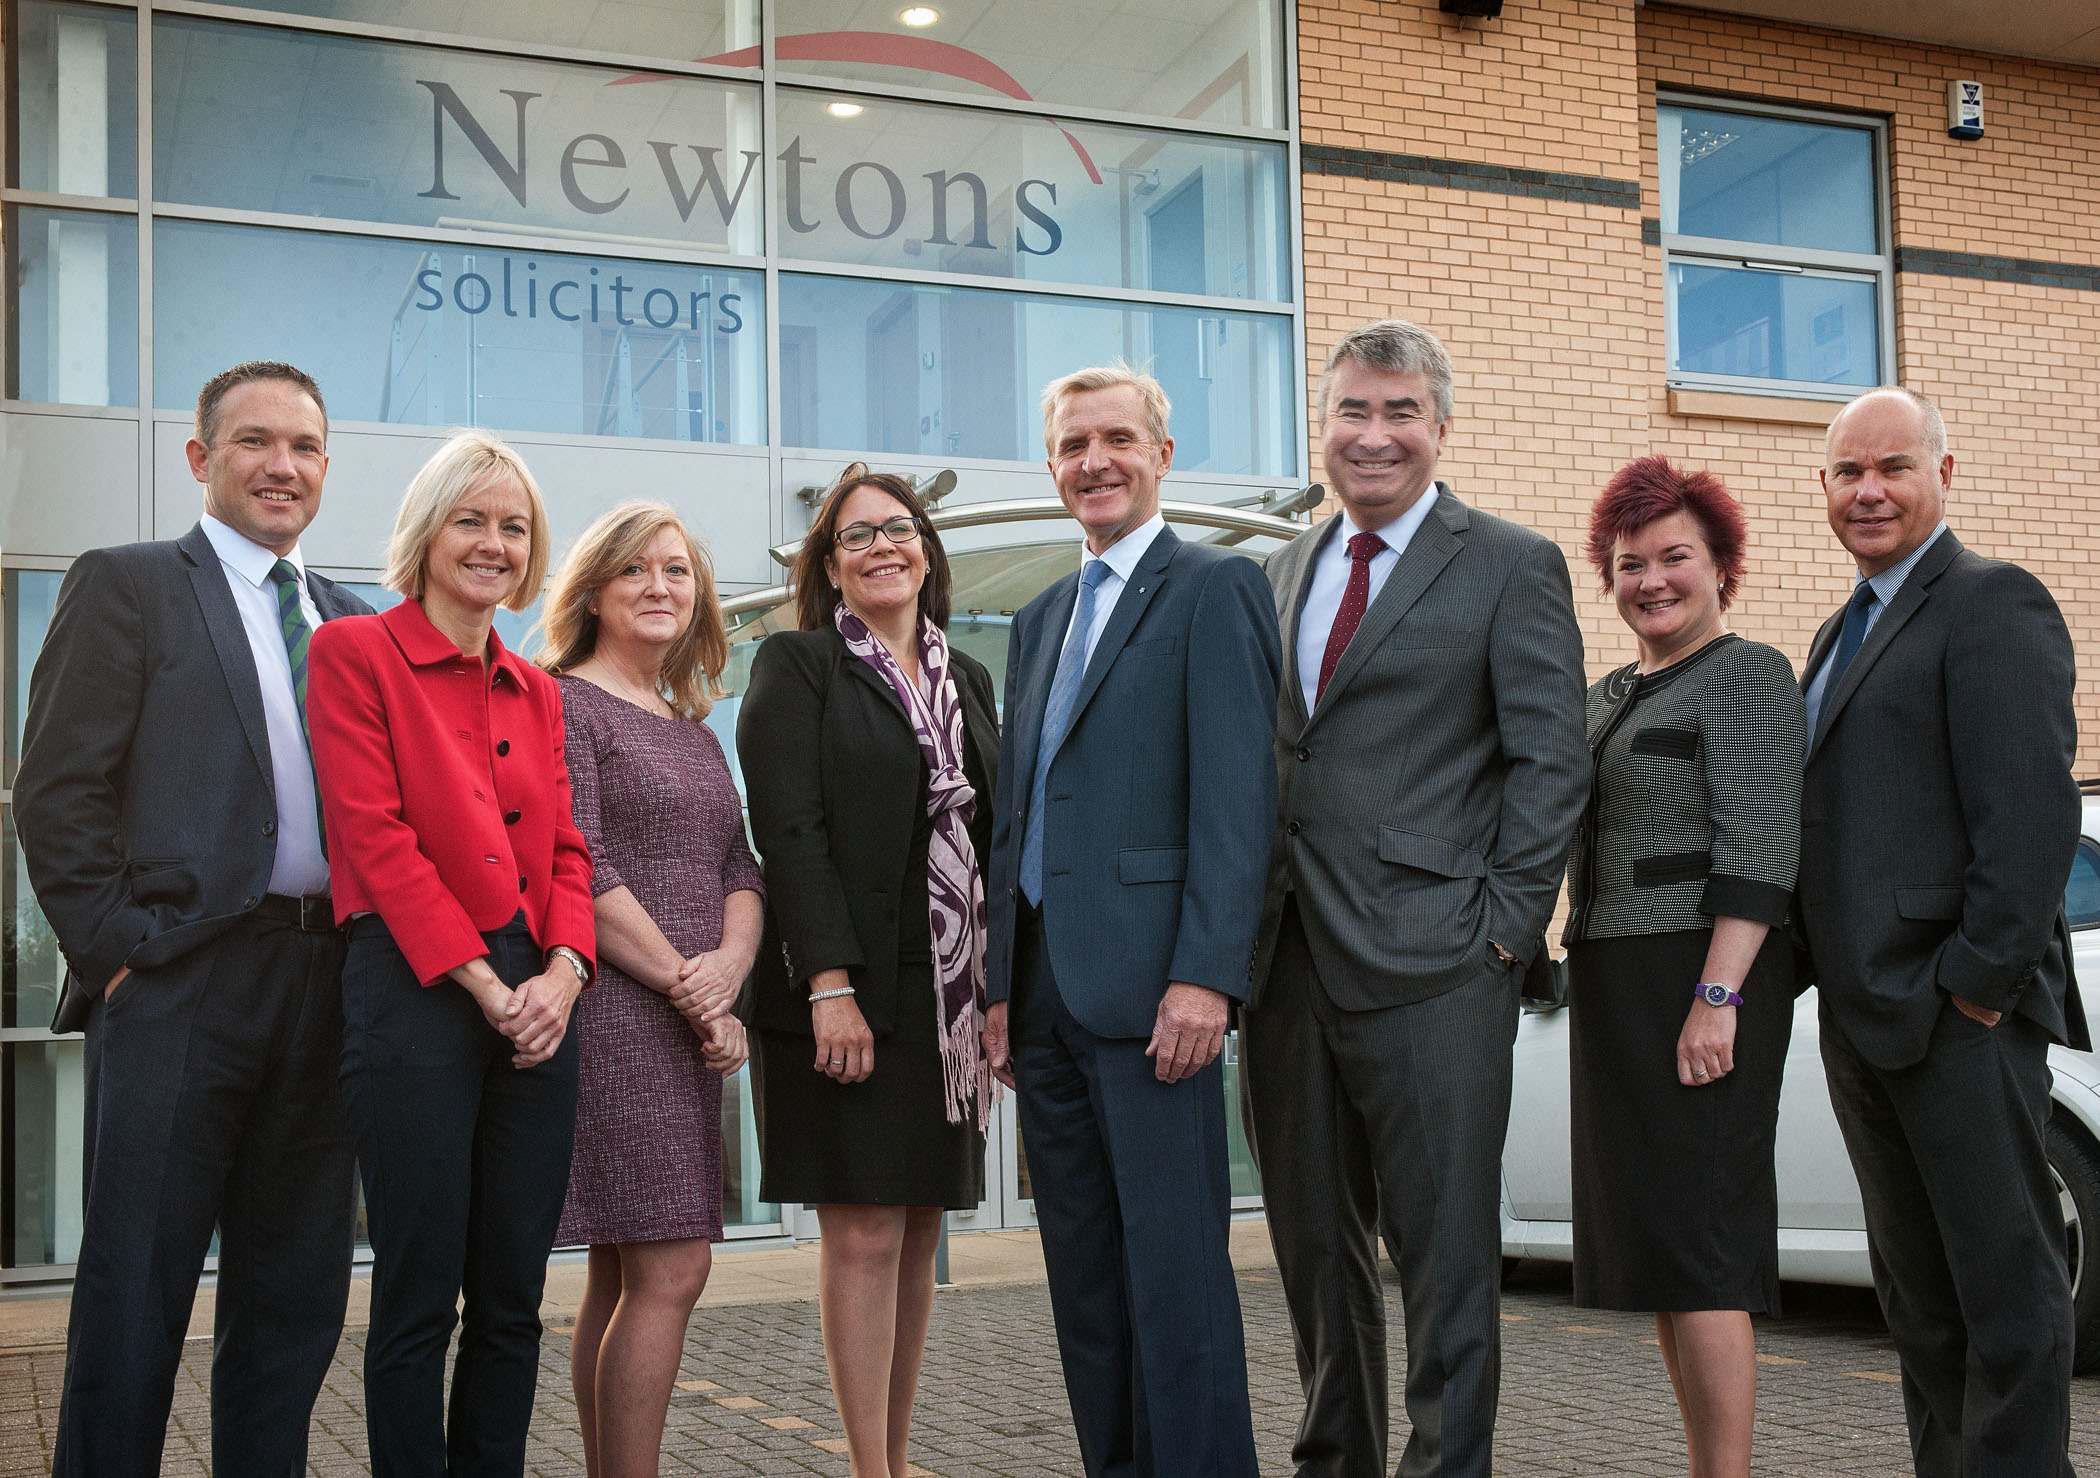 Newtons Solicitors Team Leaders Press Picture